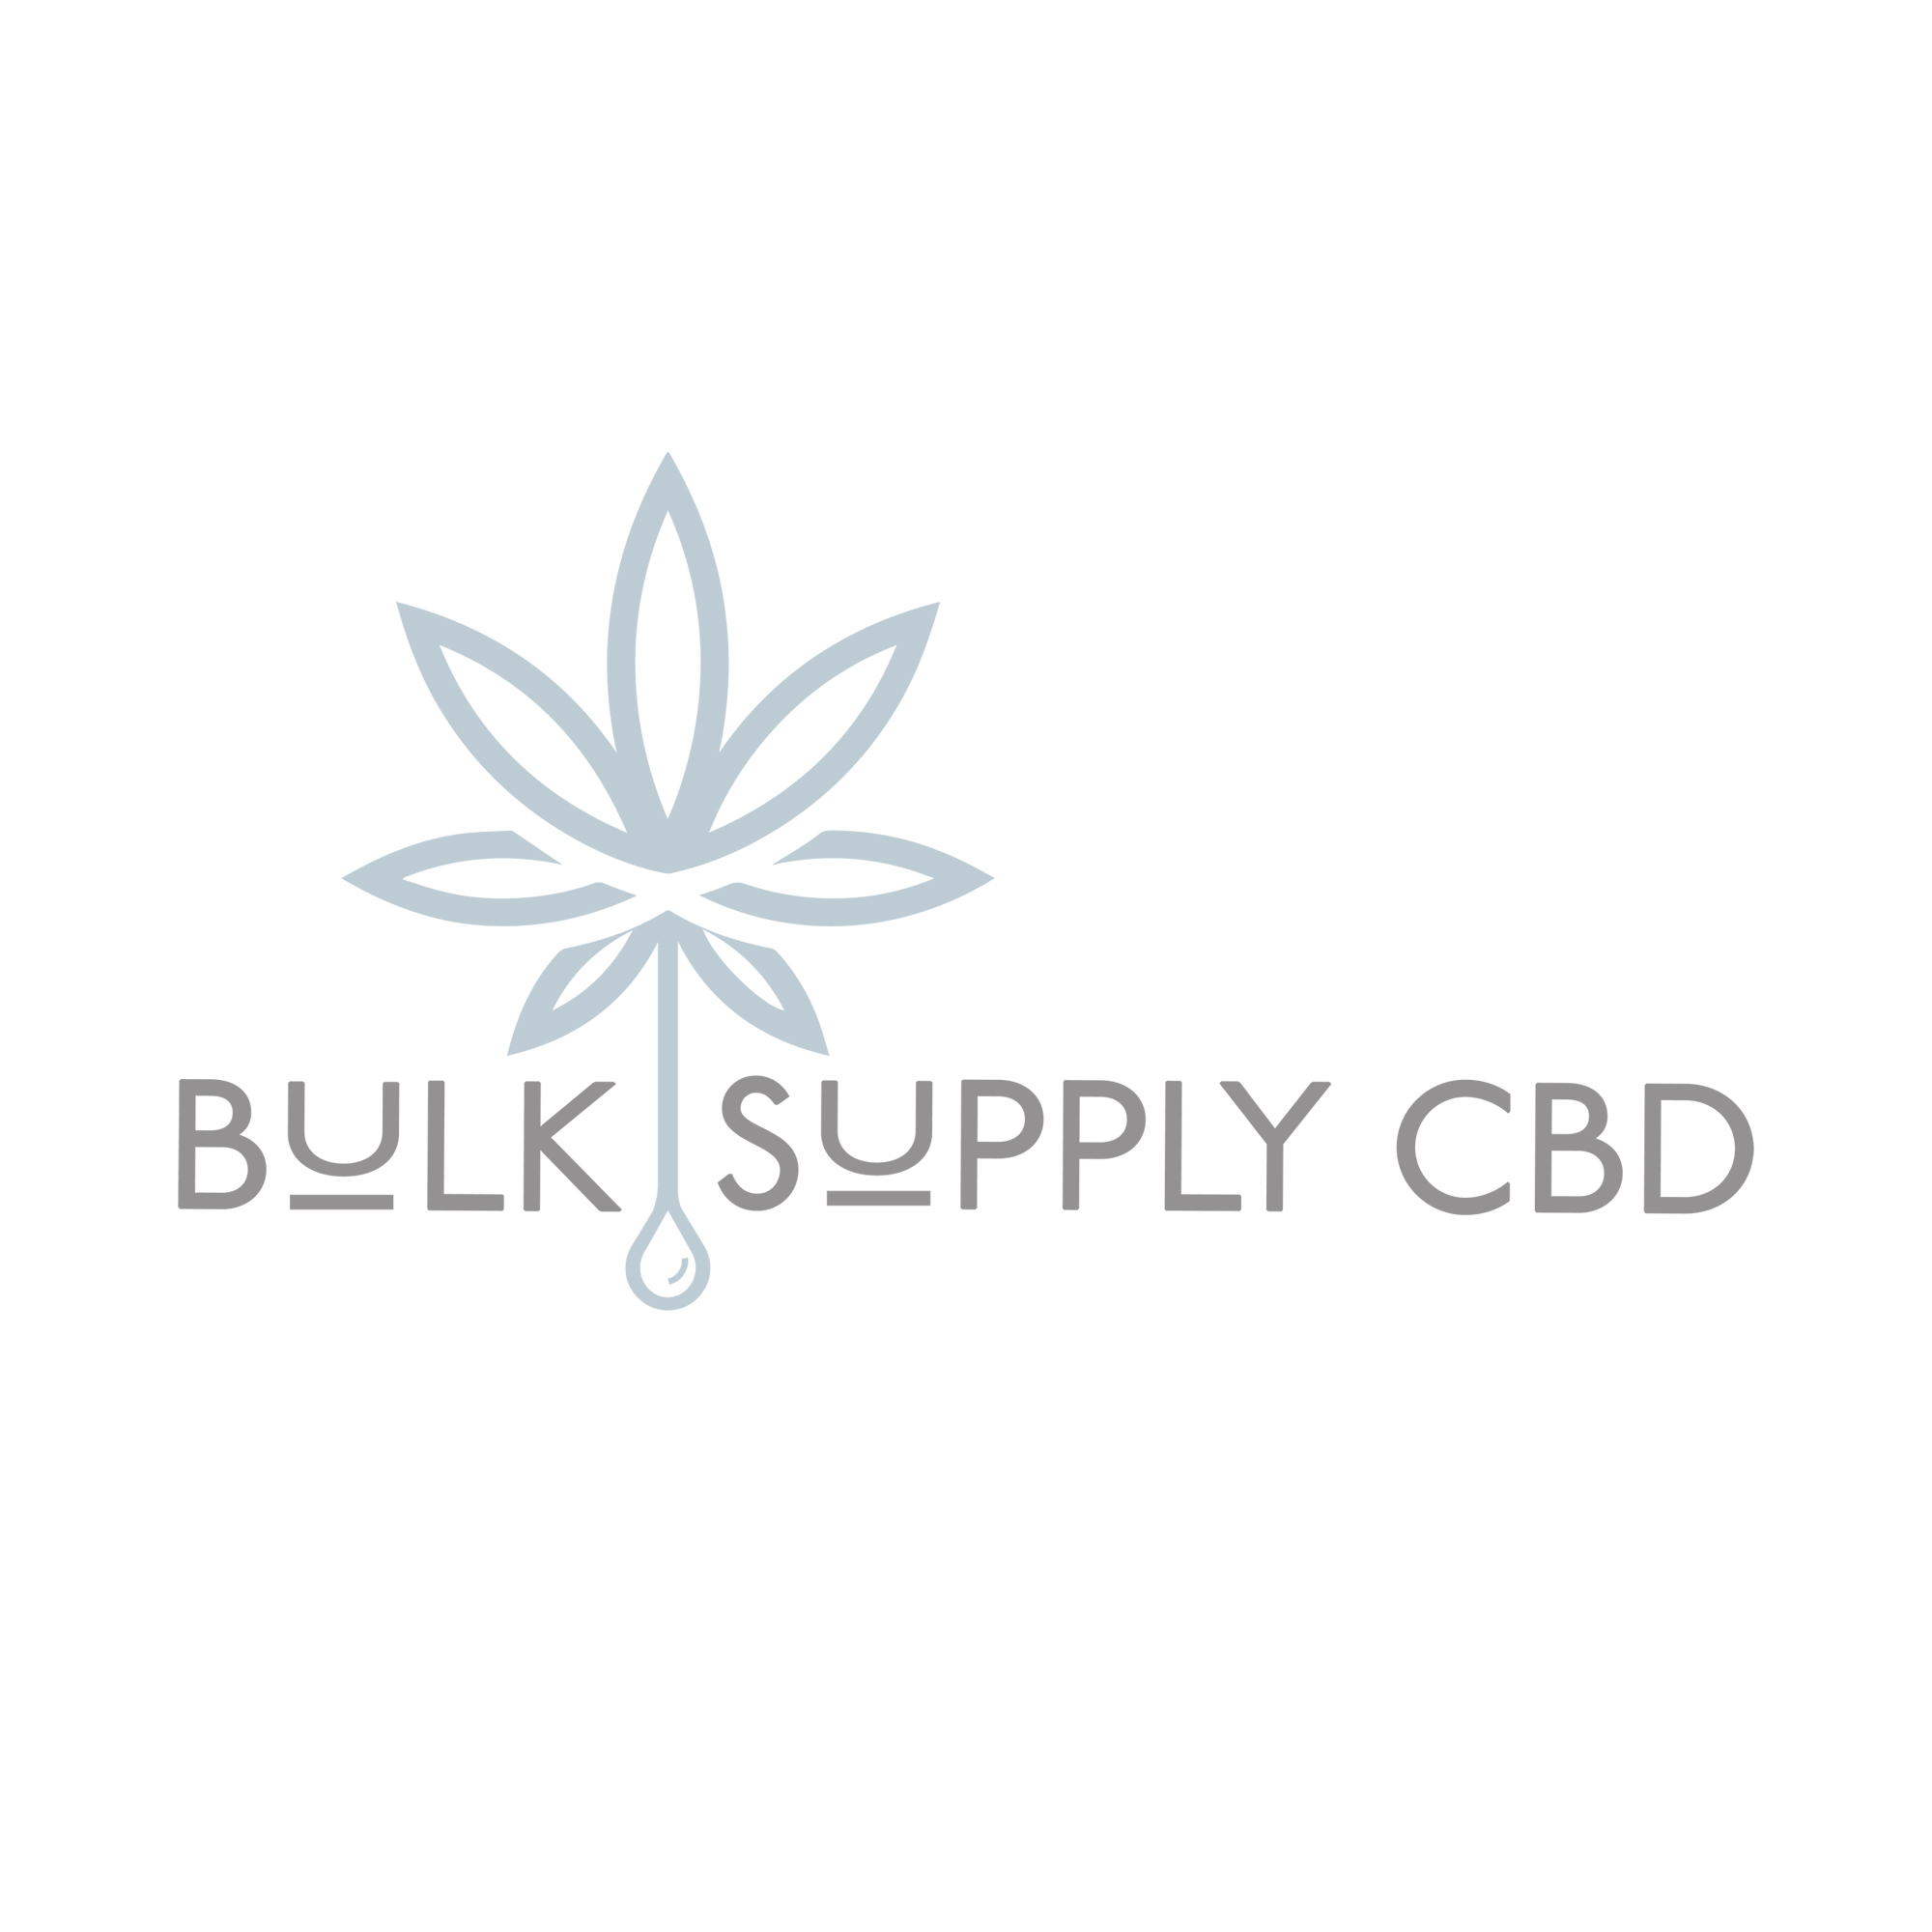 Bulk Supply CBD